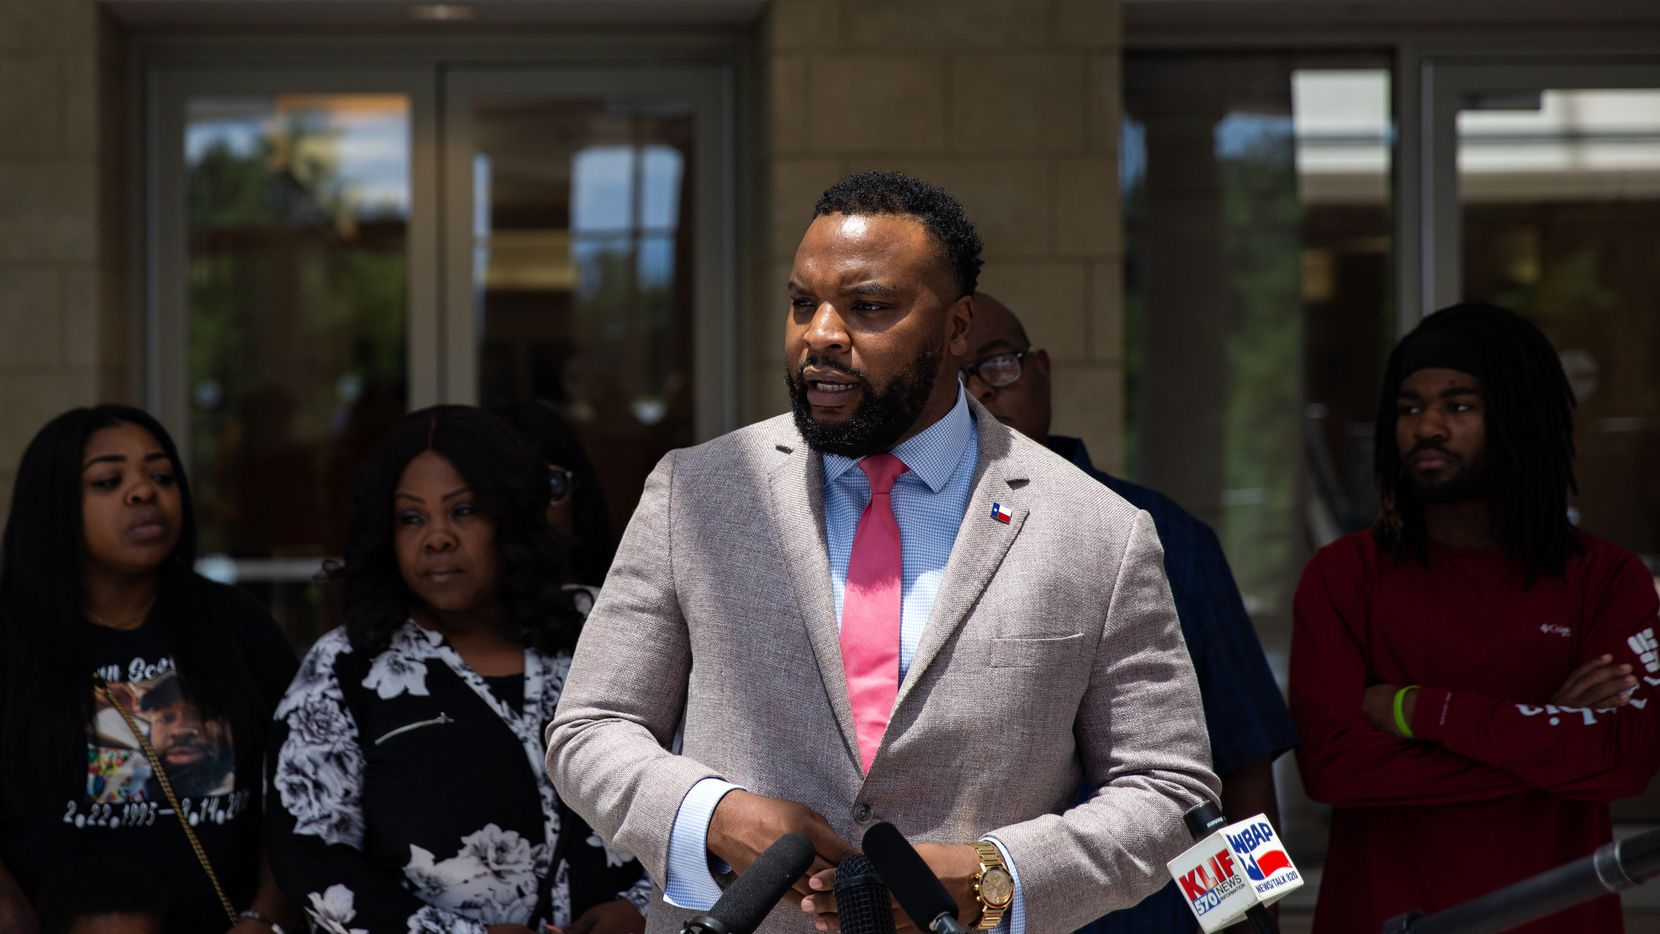 """Attorney Lee Merritt speaks at a press conference at the Collin County Courthouse on July 12, 2021, three days after the release of a 41 minute video leading up to Marvin Scott III's death at the Collin County Jail. """"There were thousands of opportunities to save Marvin's life here,"""" Lee Merritt said at the press conference. """"Marvin Scott was punished for being in a mental health crisis.""""(Shelby Tauber/Special Contributor)"""